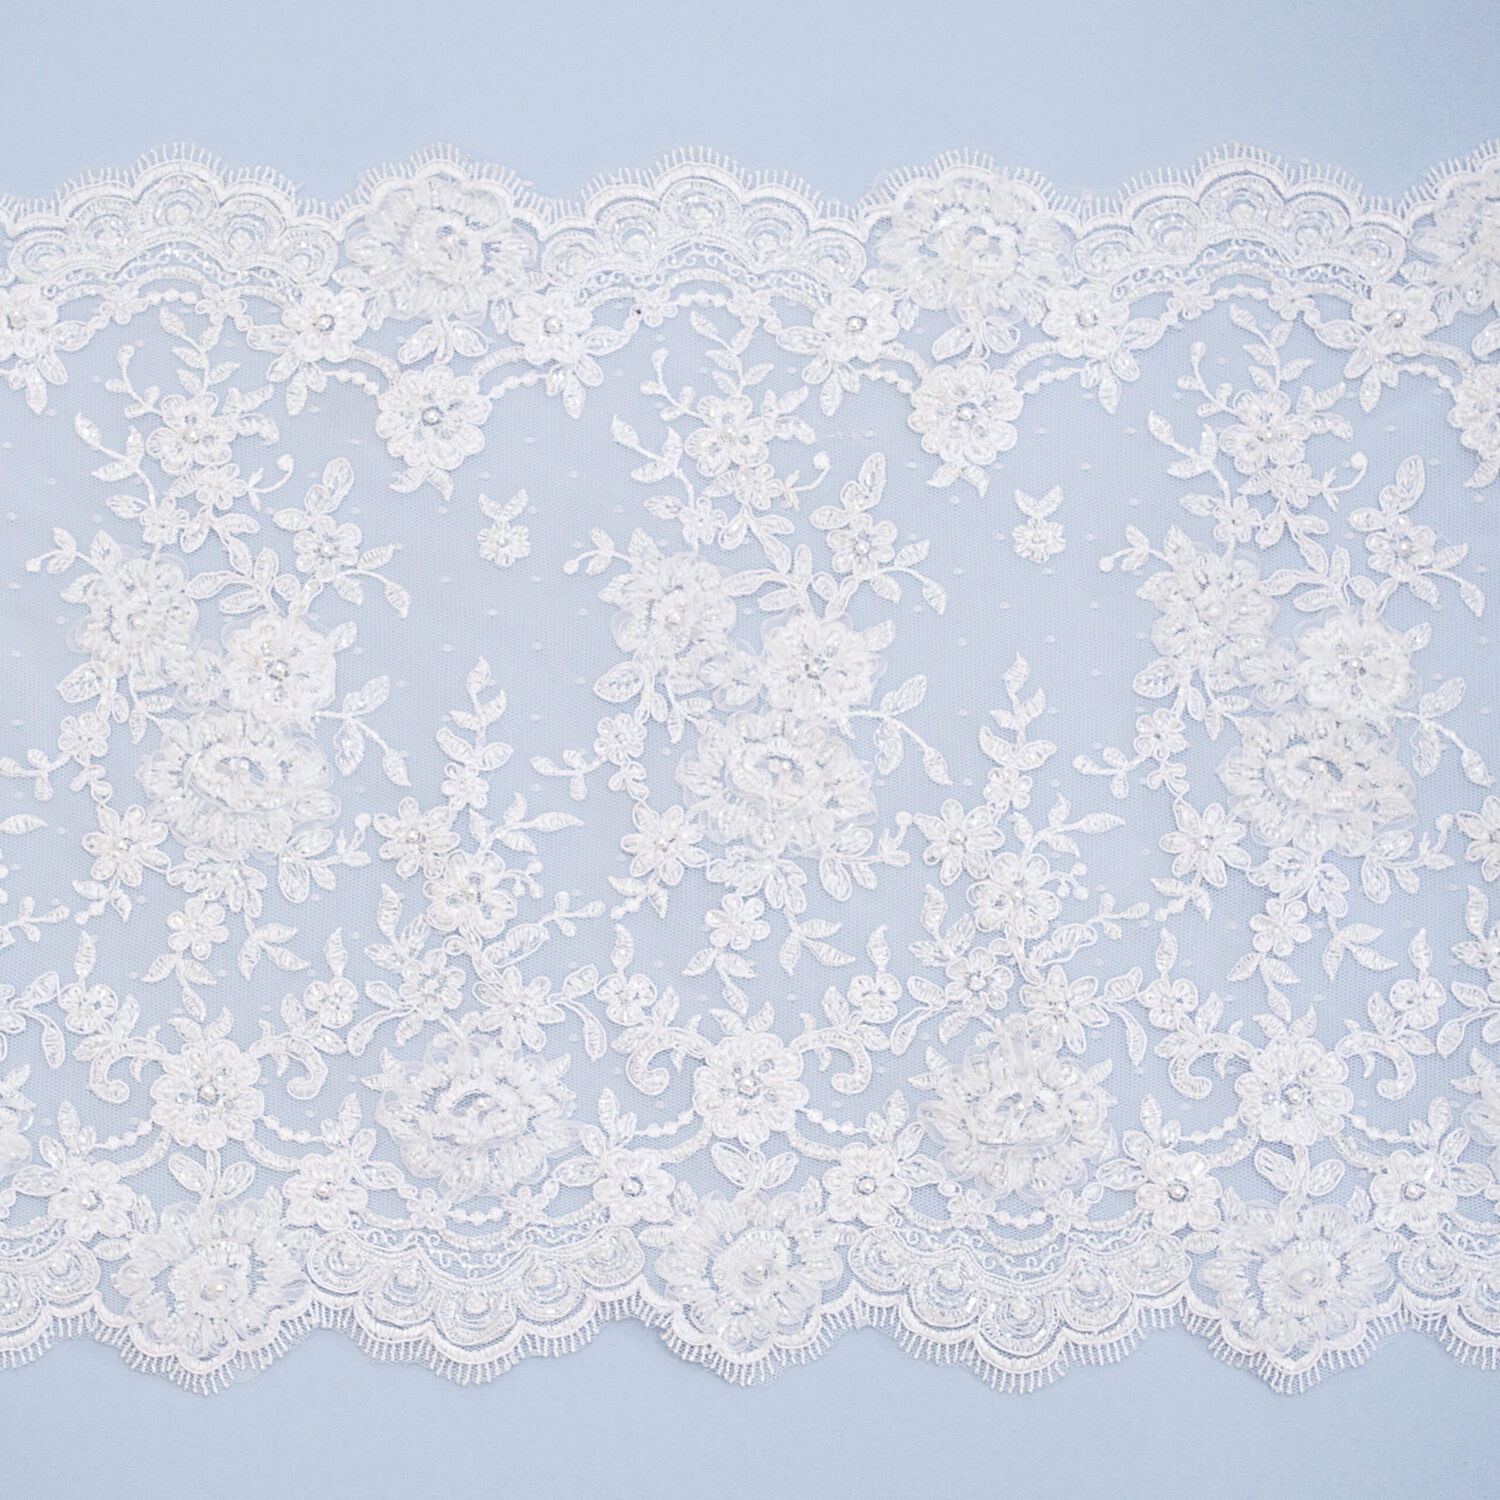 Embroidered lace trim M4550-1(D)FCG7UB-N84